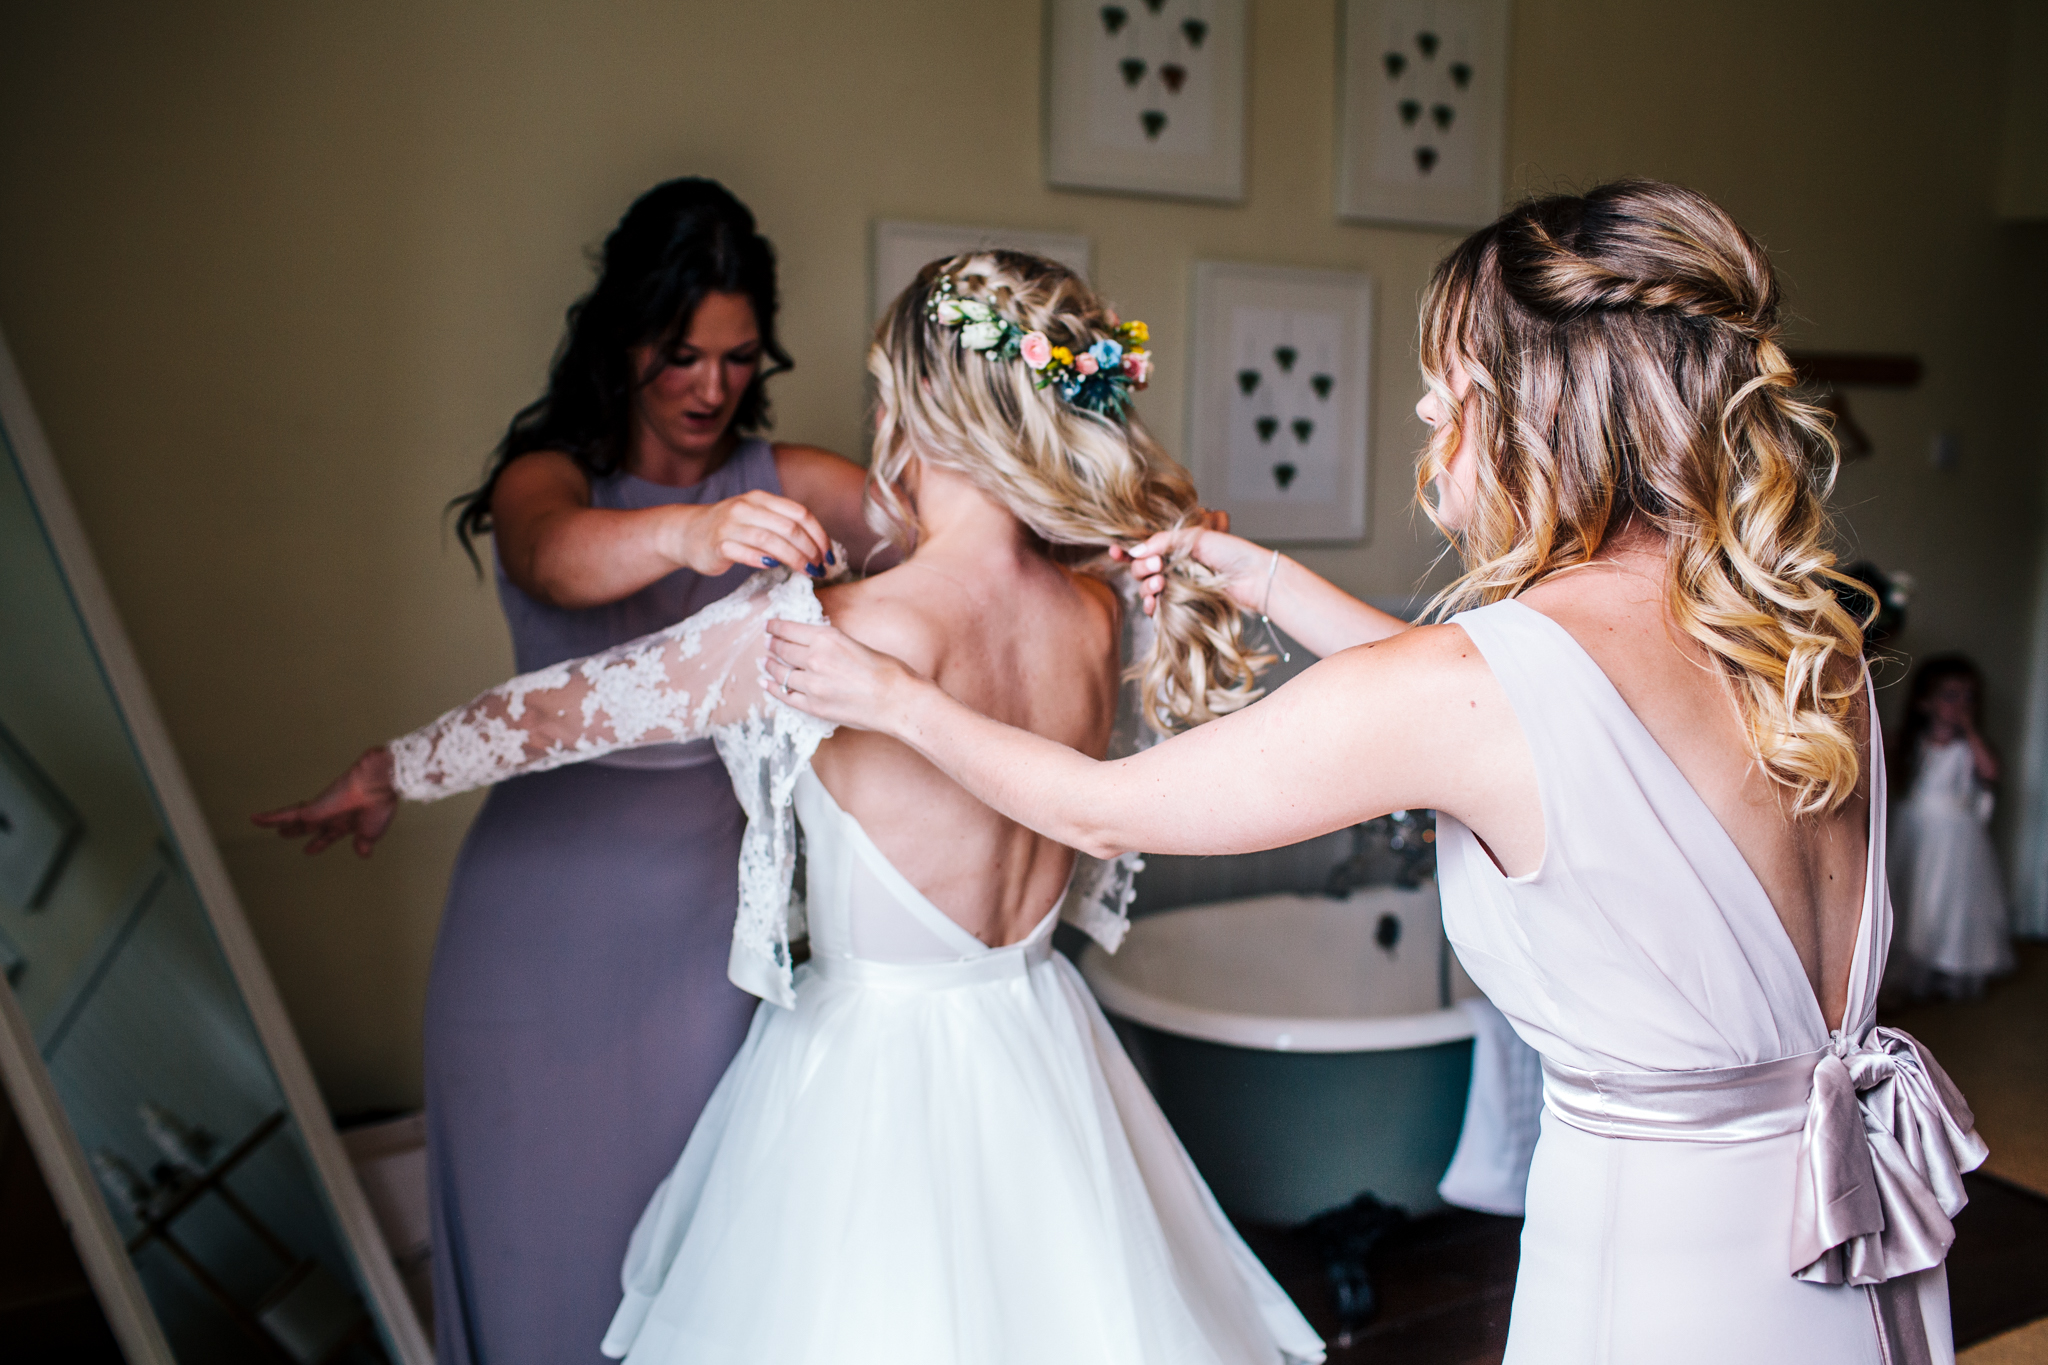 Bride wearing Emma Tindley separates of a lace top and layered skirt